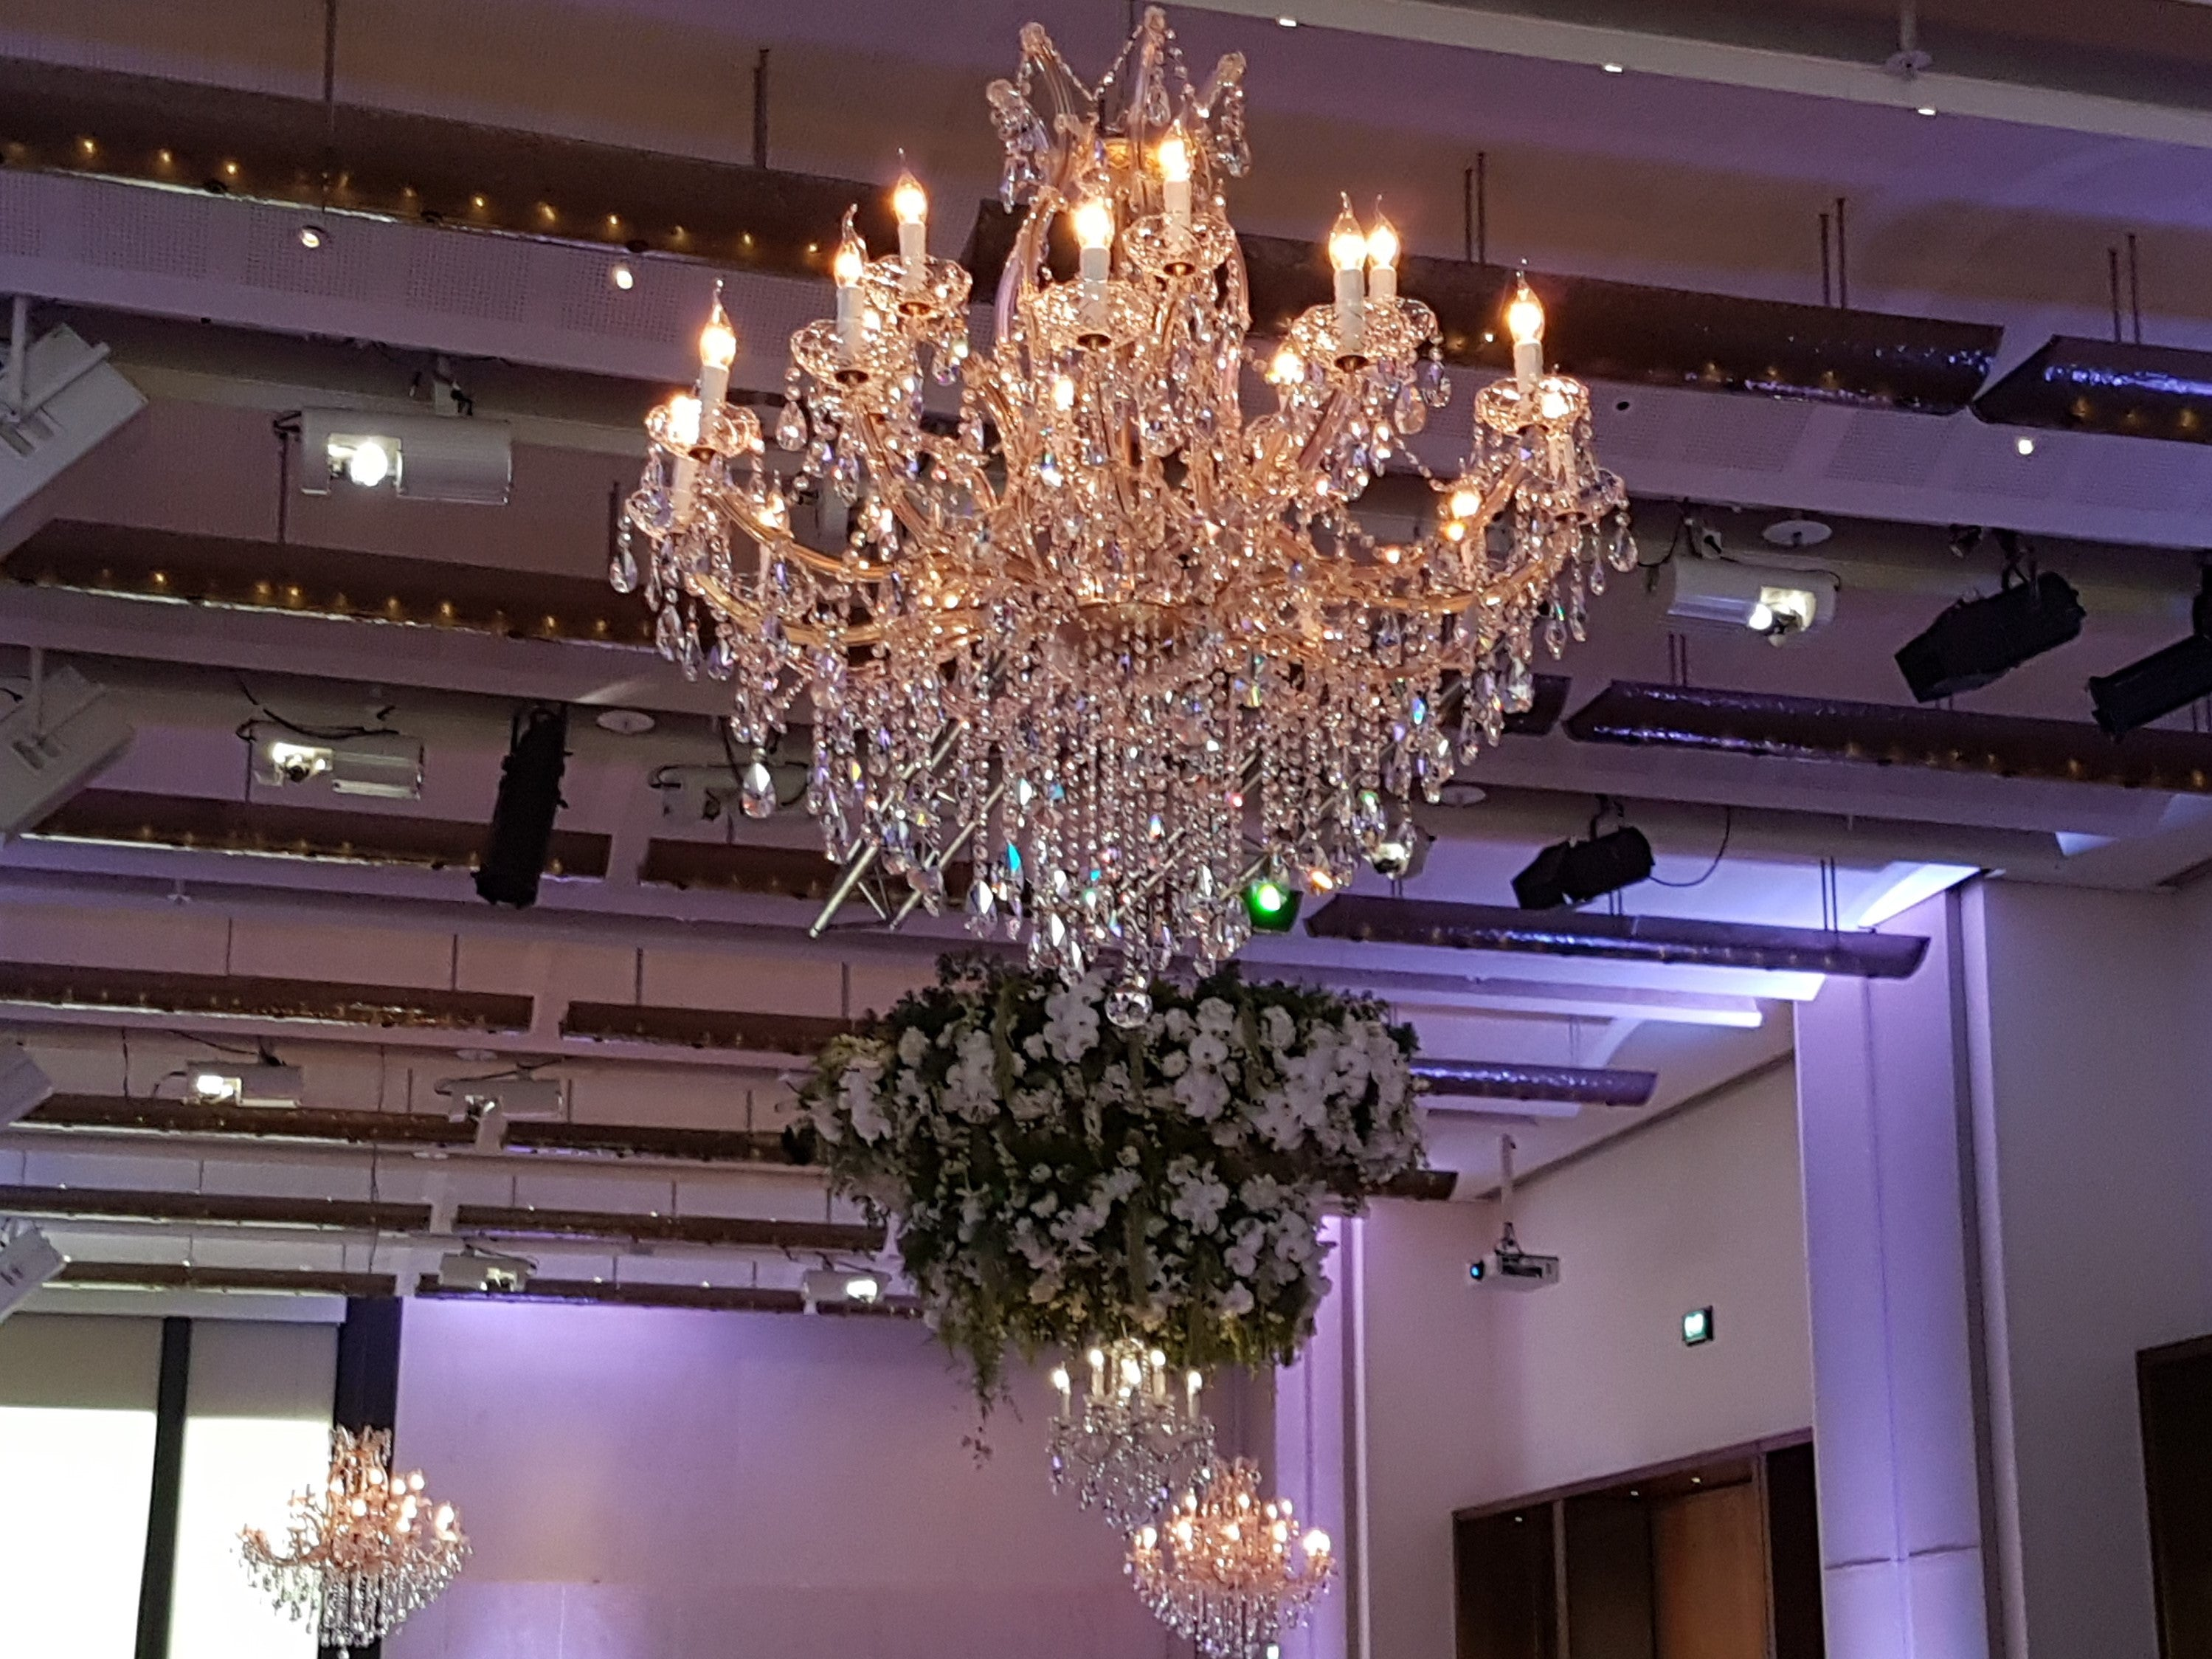 Crown River Room Wedding Melbourne; Gold Elegance 1.1m Chandelier for hire